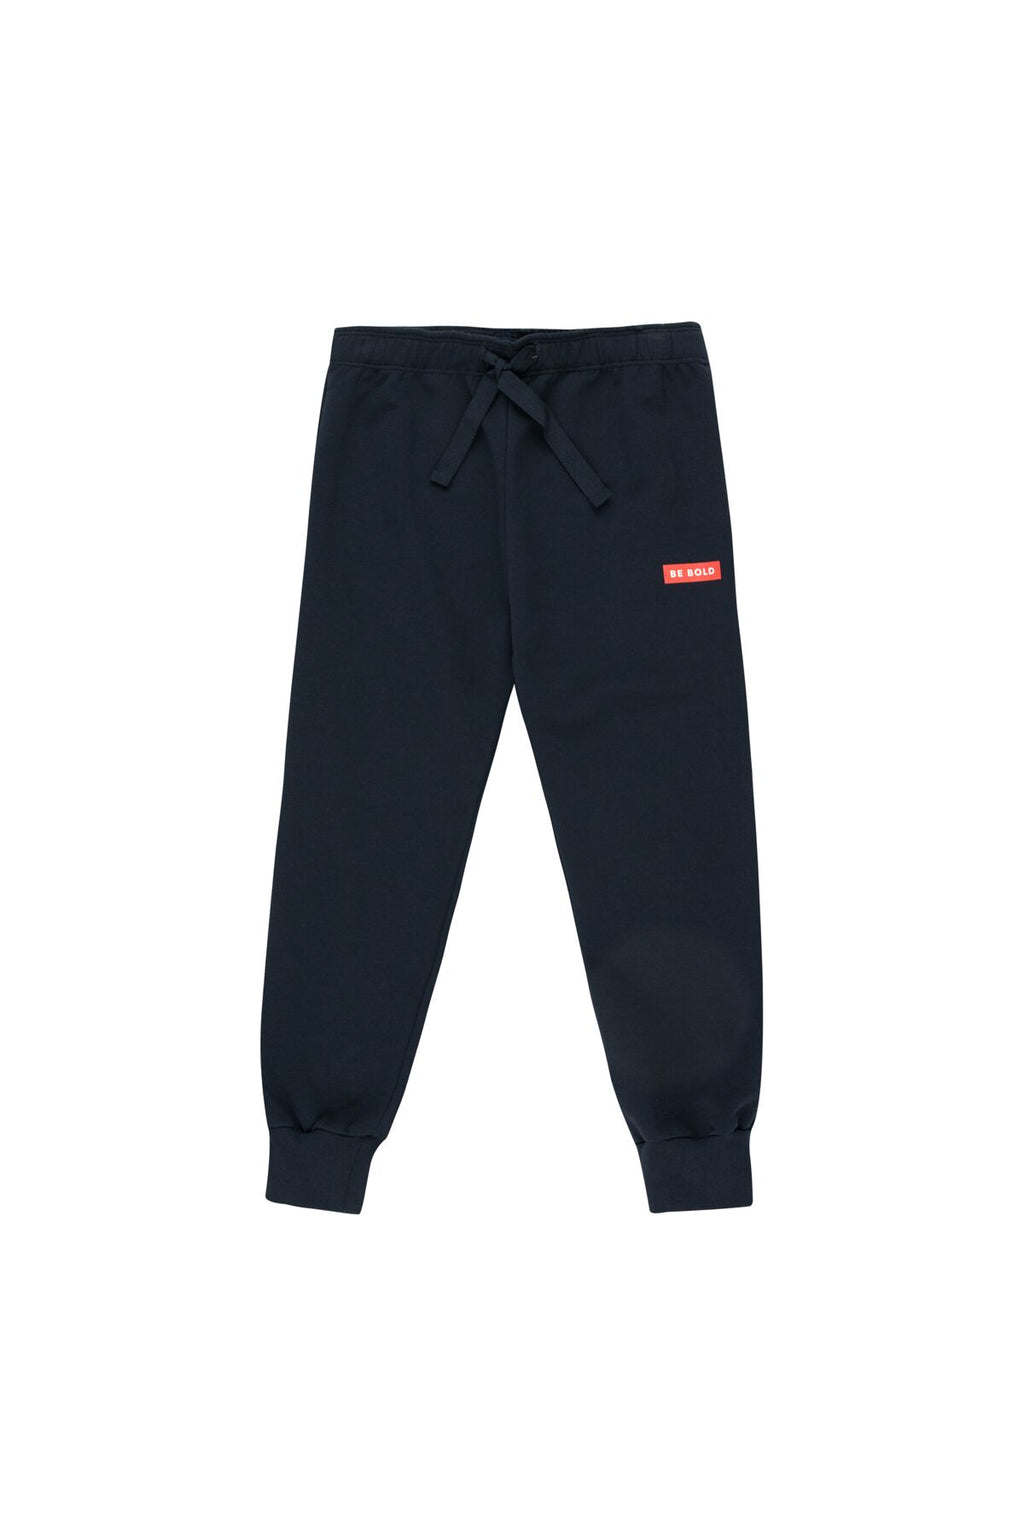 BE BOLD' PANT